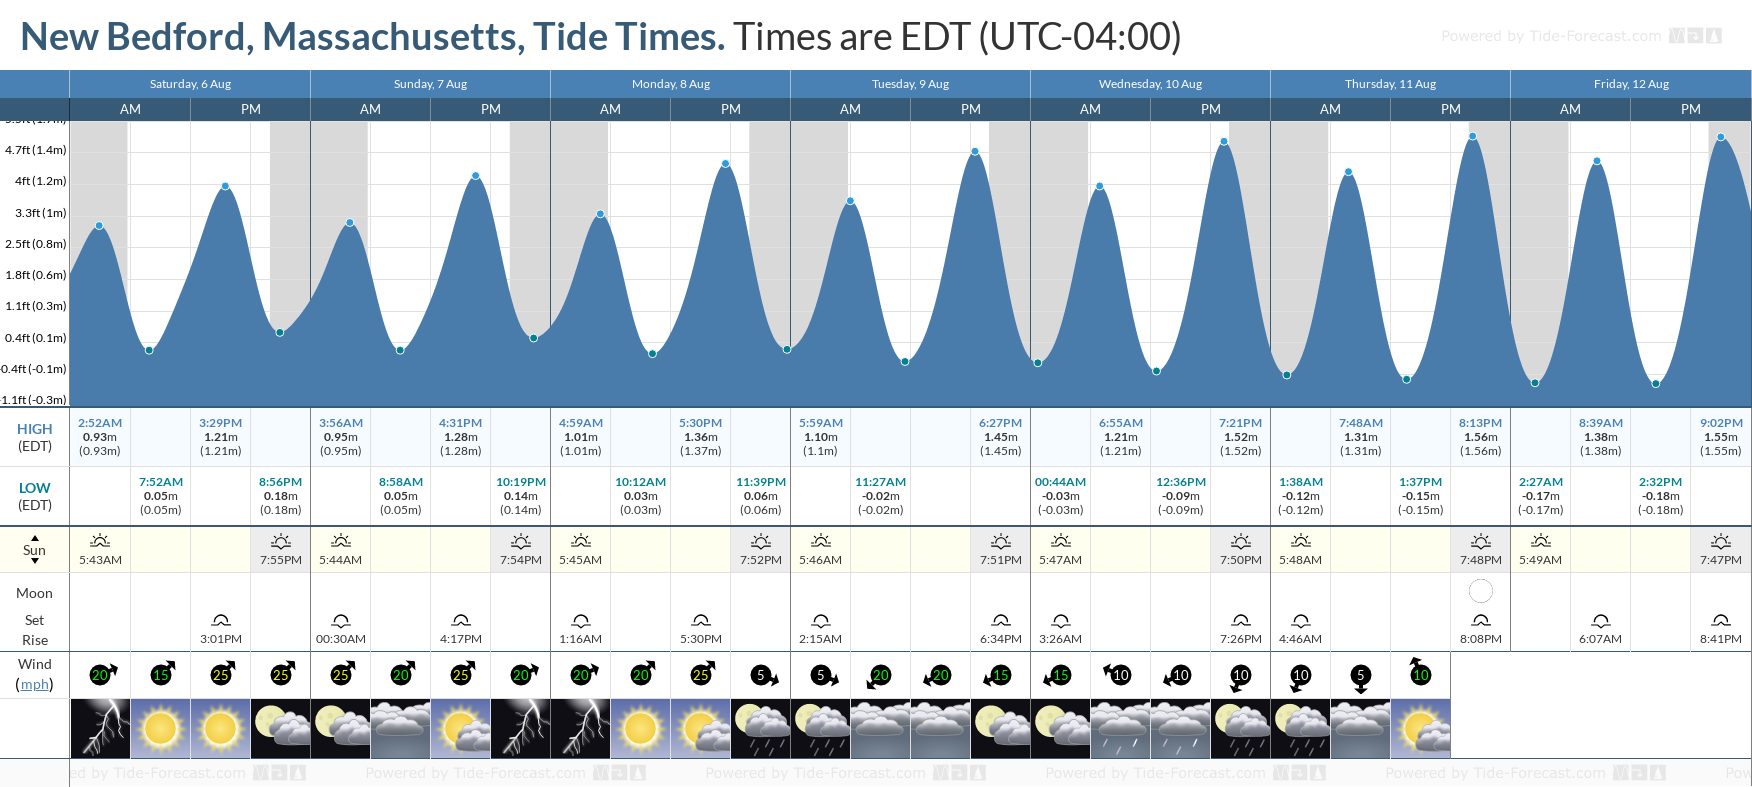 New Bedford, Massachusetts Tide Chart including high and low tide tide times for the next 7 days